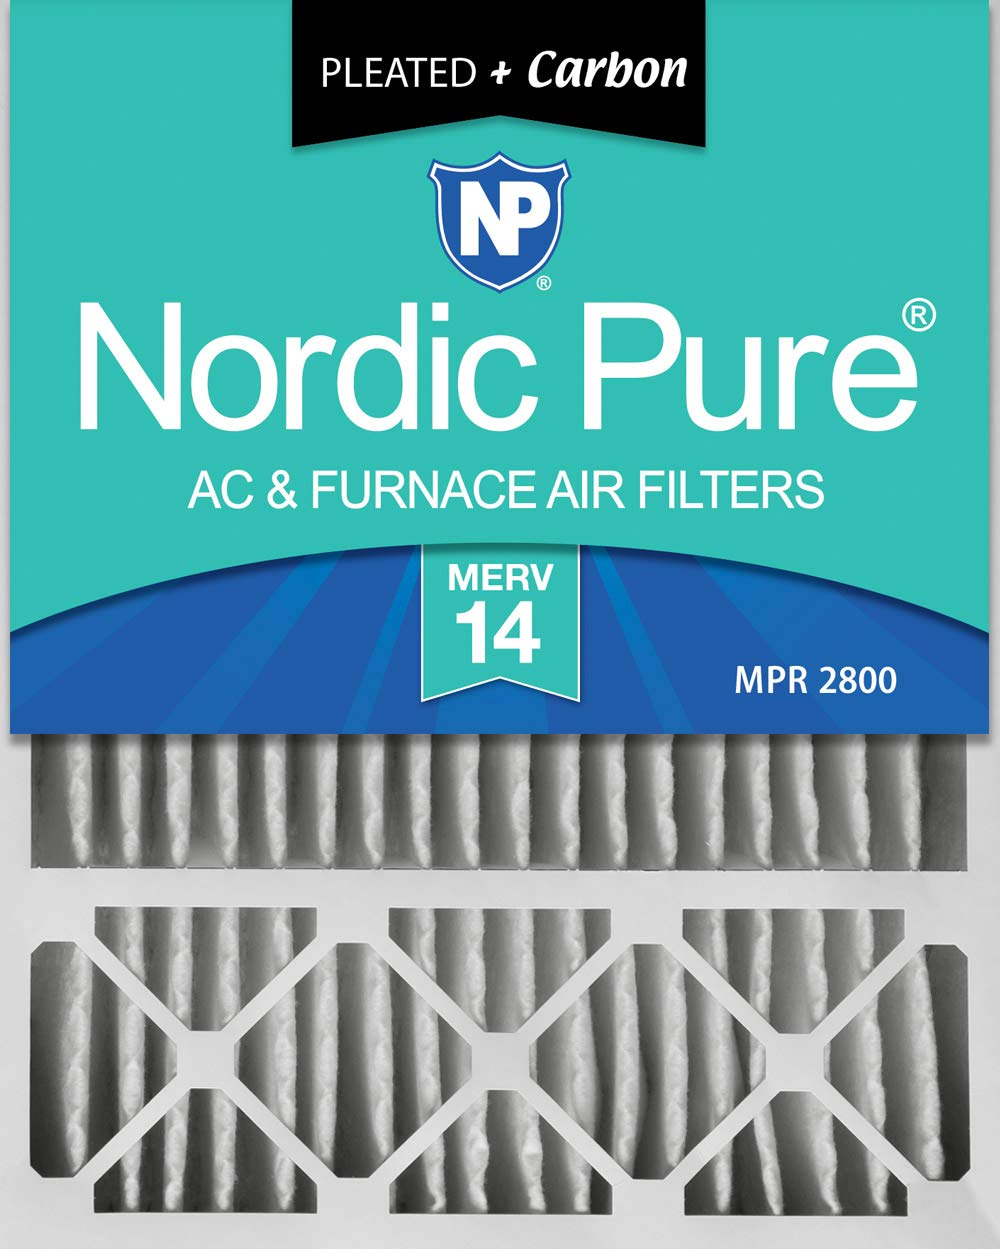 Nordic Pure 20x25x5 (4-3/8 Actual Depth) MERV 14 Plus Carbon Lennox X6675 Replacement AC Furnace Air Filter, 1 PACK